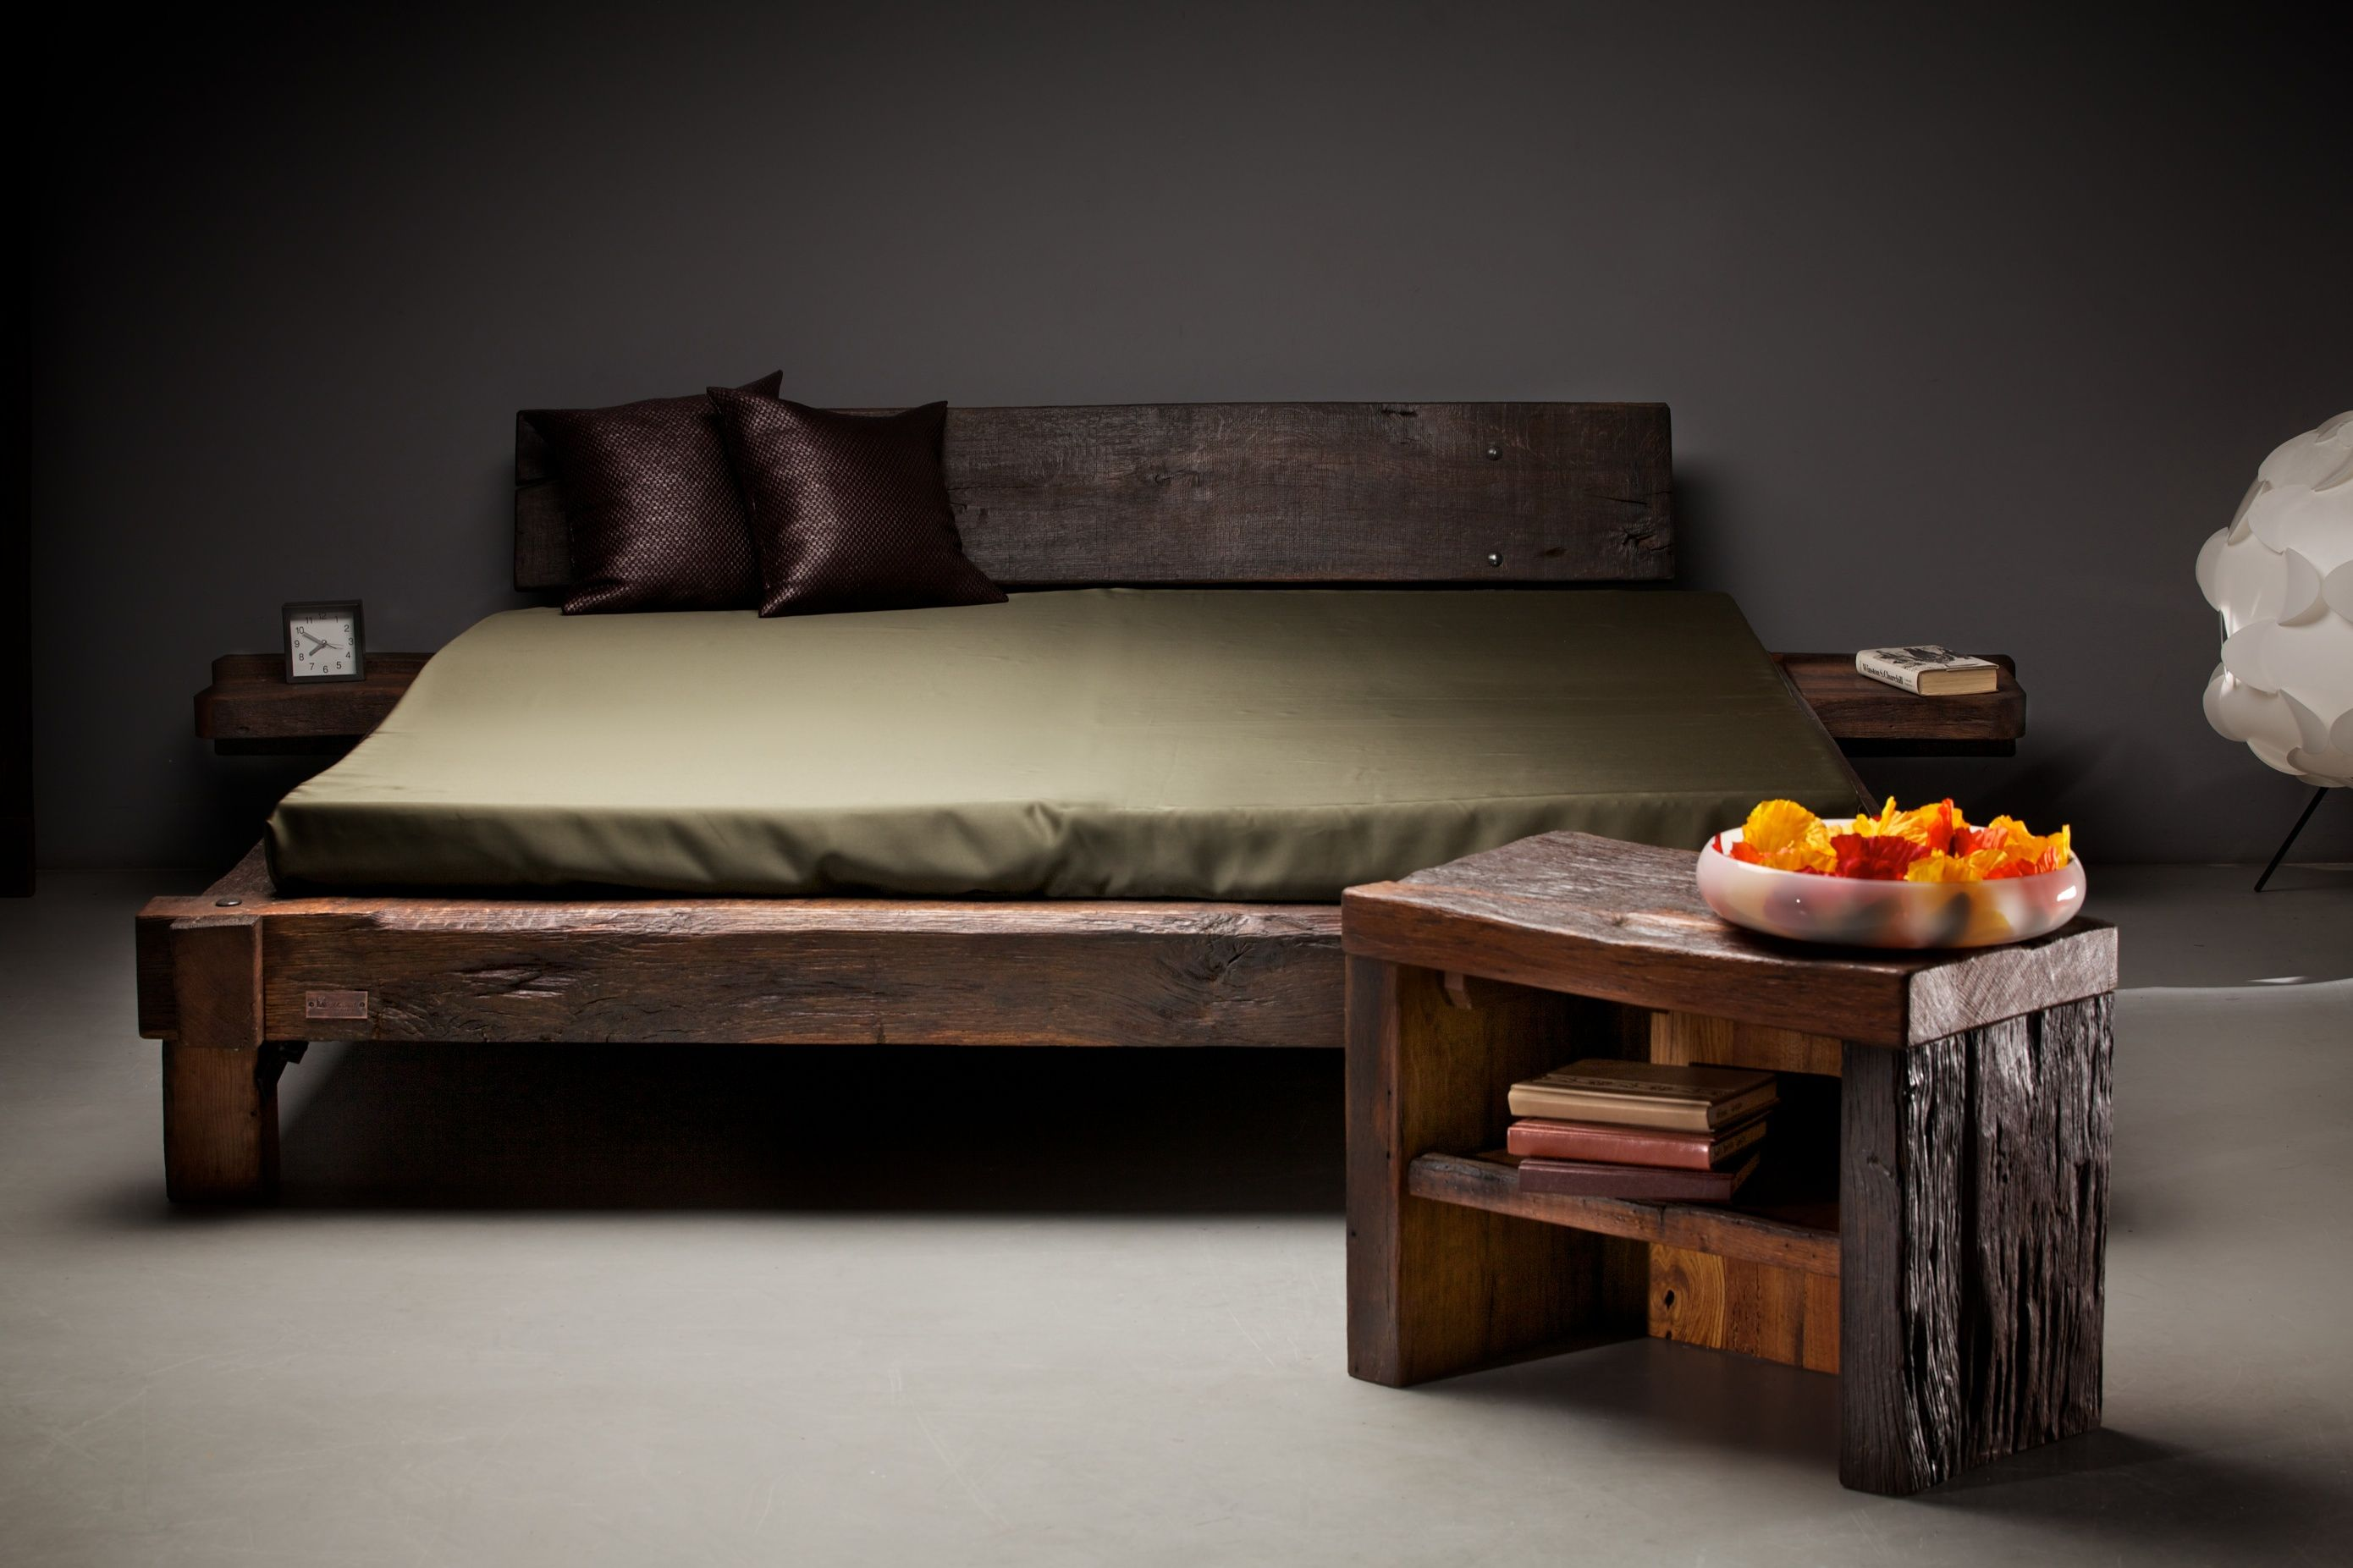 Reclaimed Oak Bed By Oldsoul Furniture Makers Www Oldsoulfurniture Co Uk Oak Bedroom Furniture Modern Bedroom Furniture Sets Rustic Bedroom Furniture